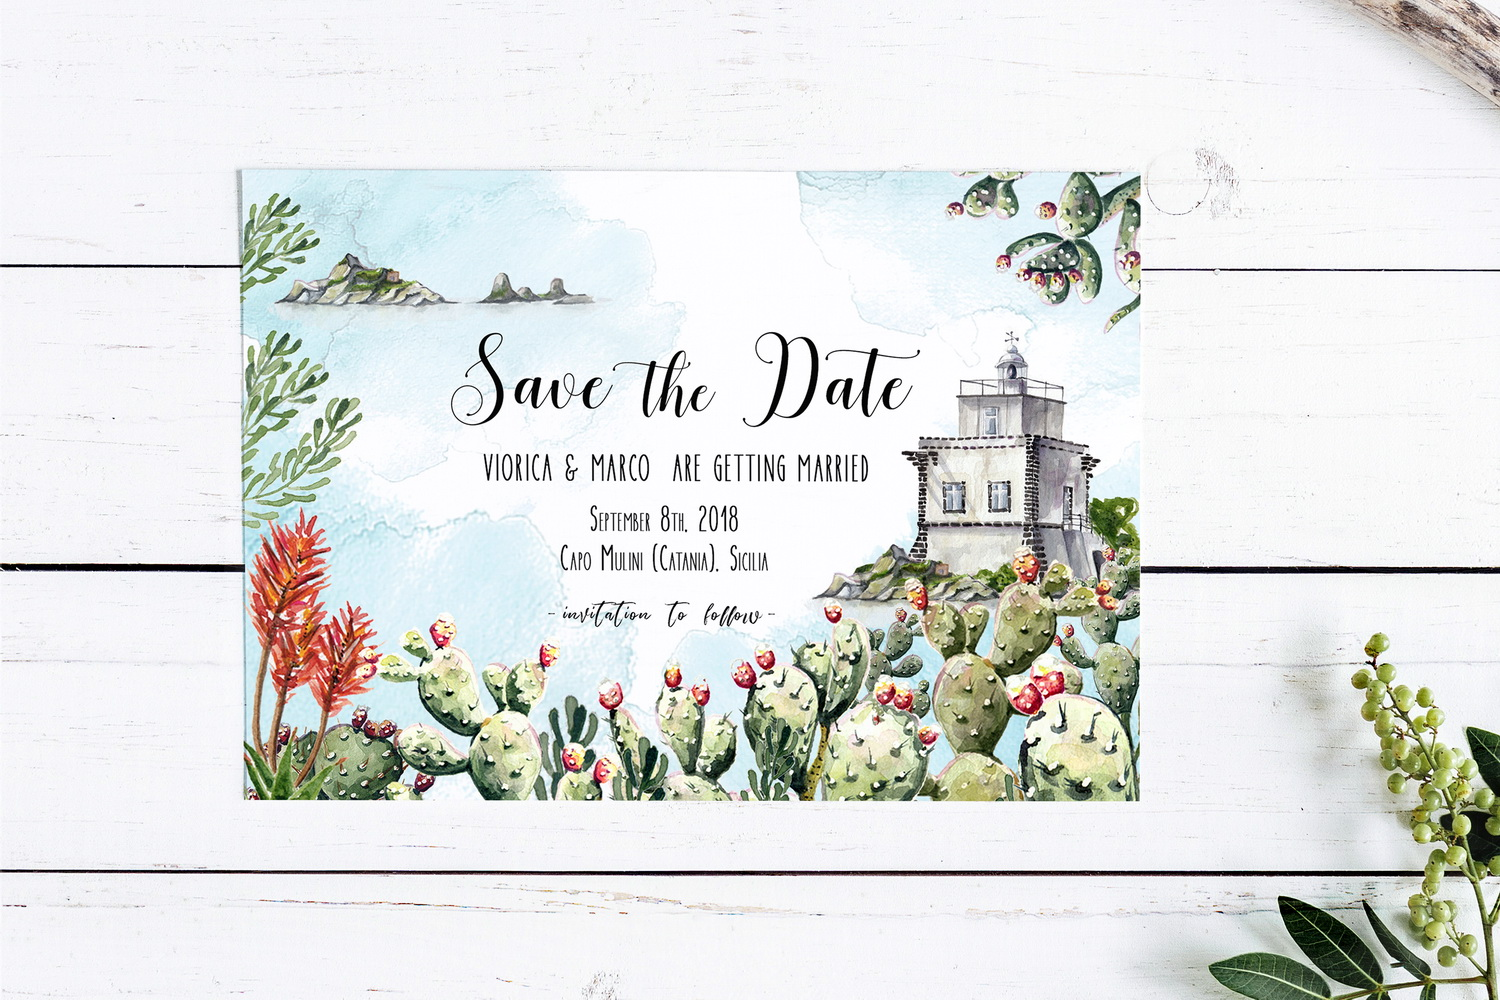 Sicilian-illustrated-wedding-suite_by-Irina-Luchian_save-the-date 2.jpg